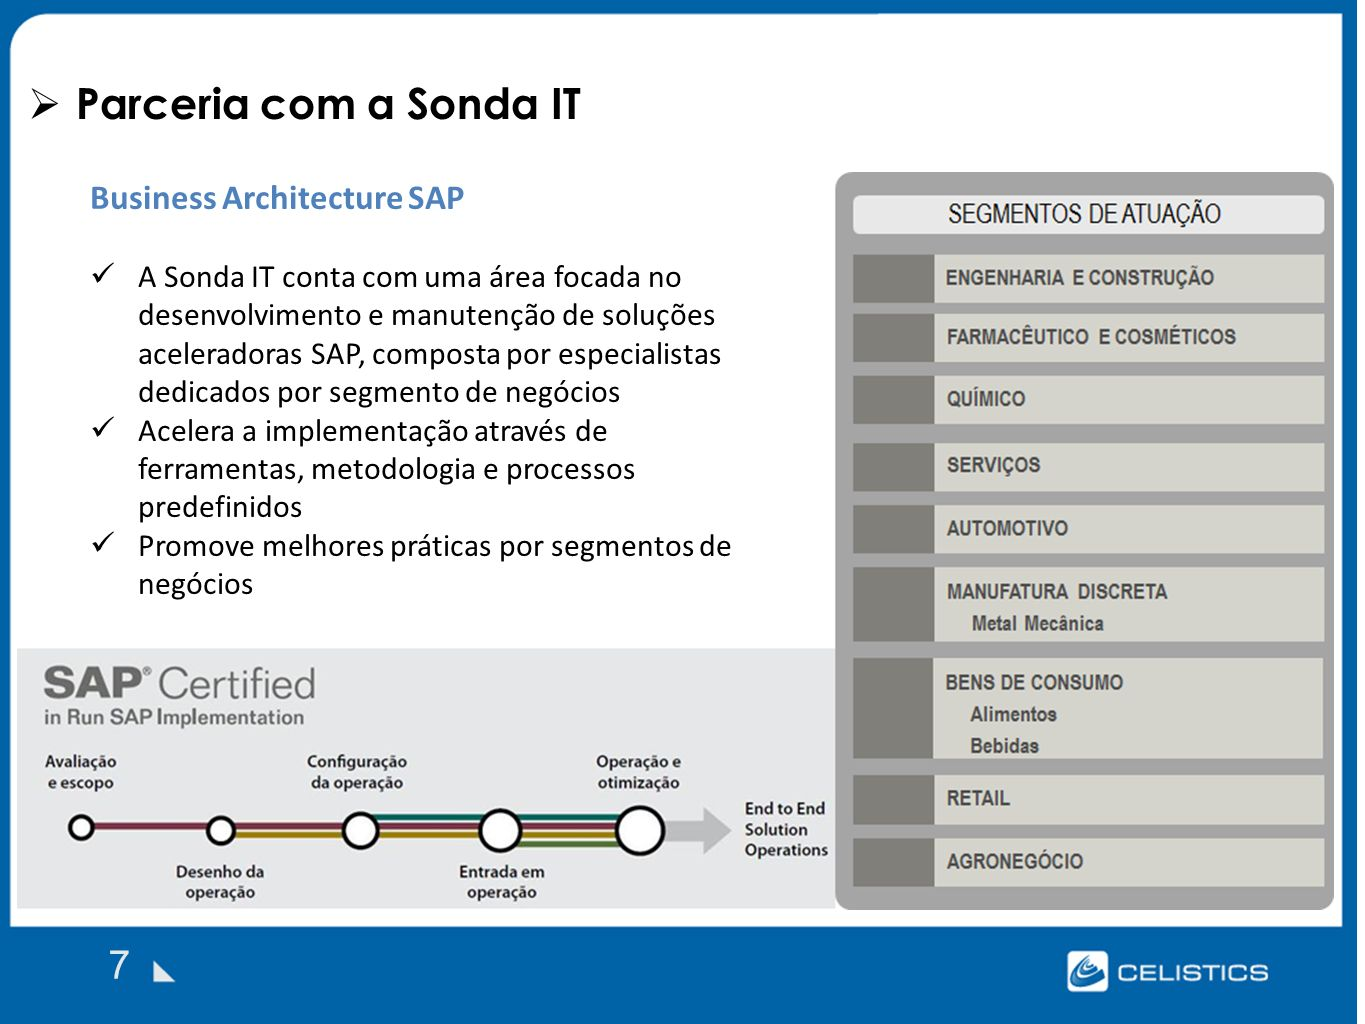 Parceria com a Sonda IT 7 Business Architecture SAP